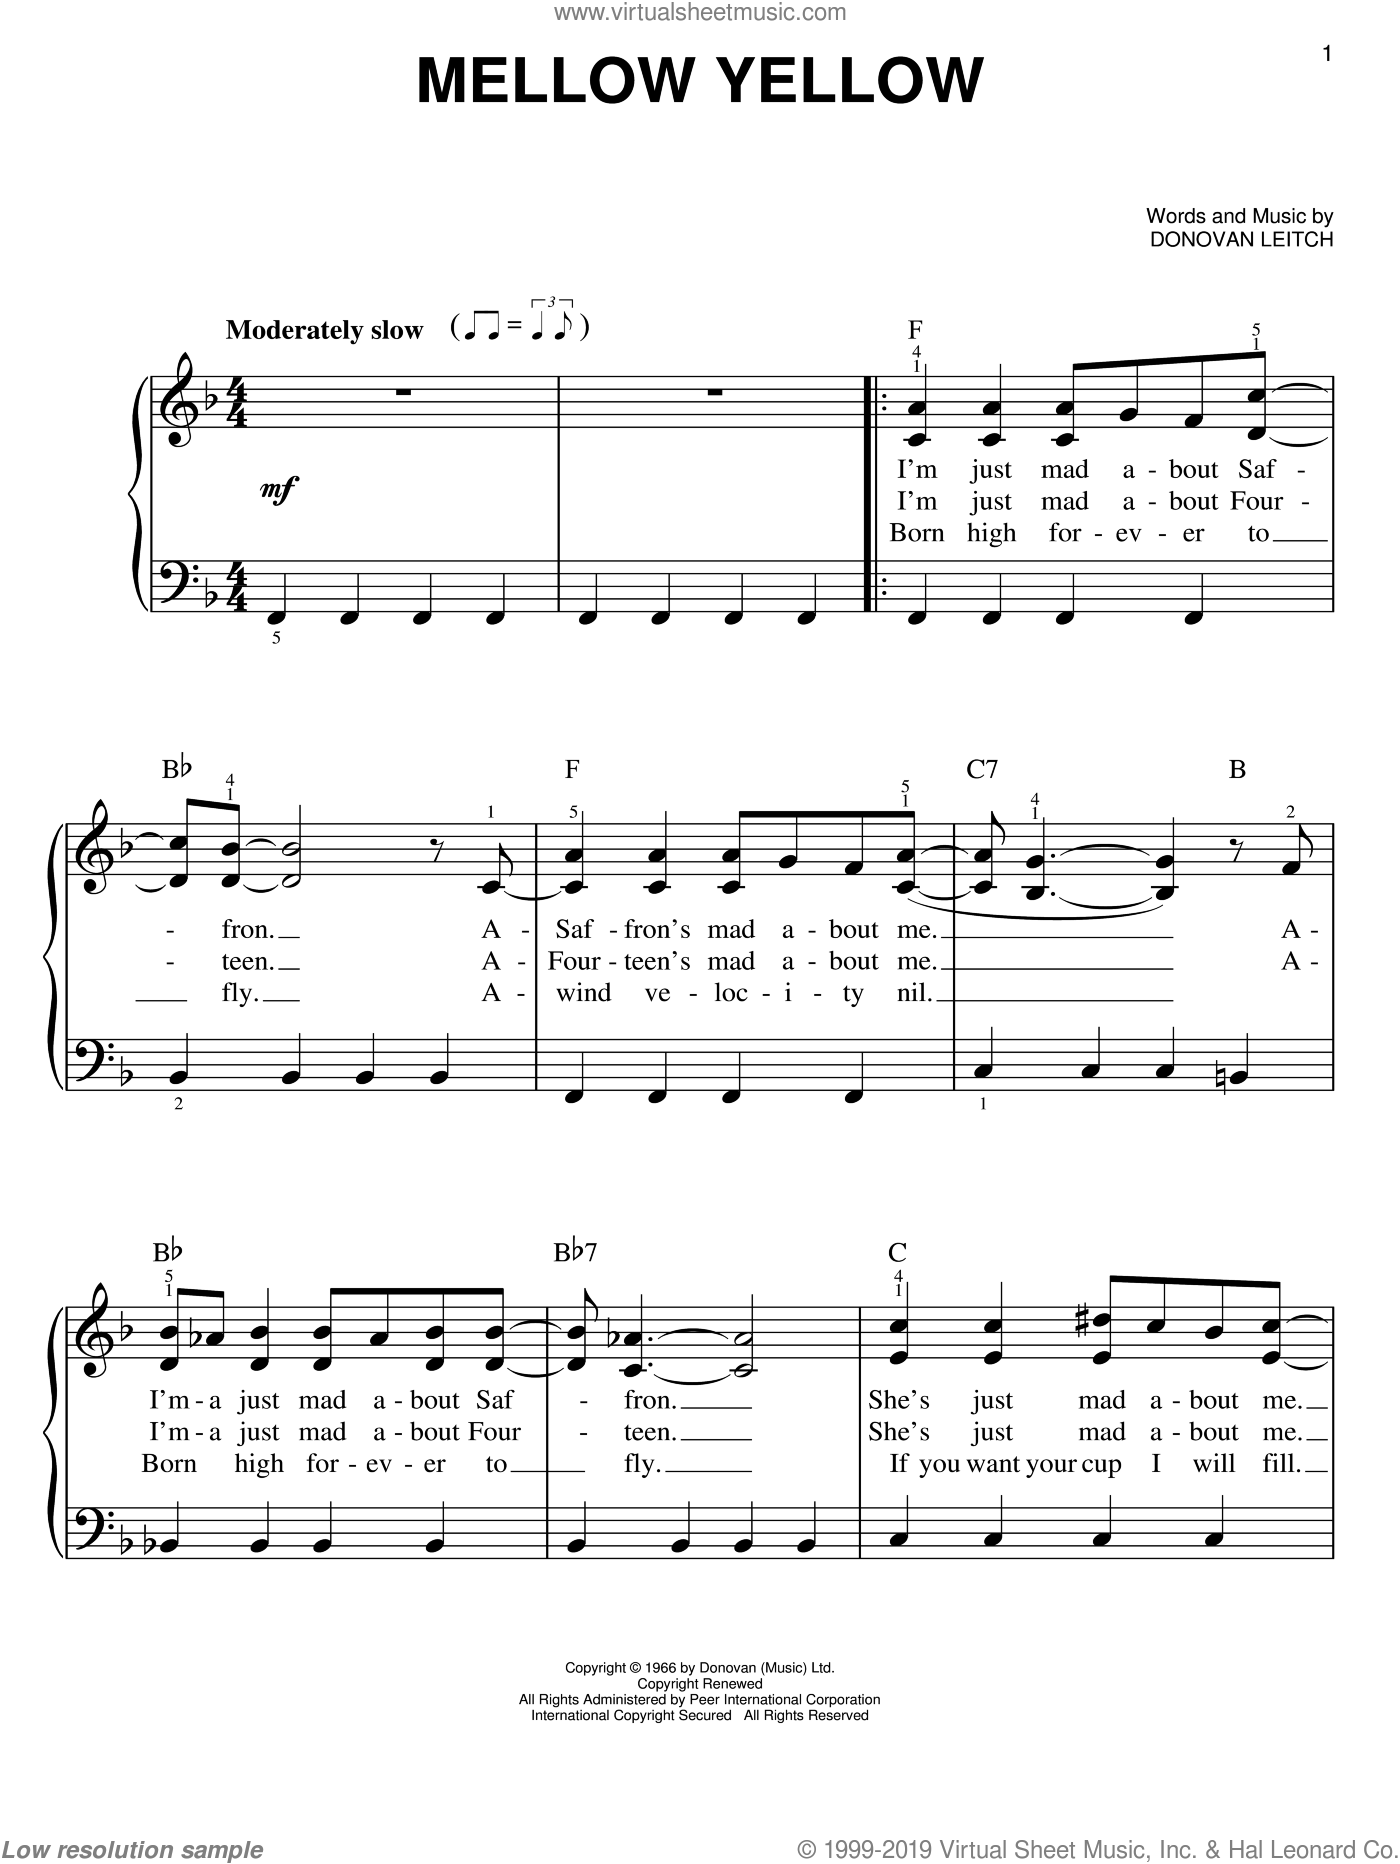 Mellow Yellow sheet music for piano solo by Walter Donovan, easy piano. Score Image Preview.